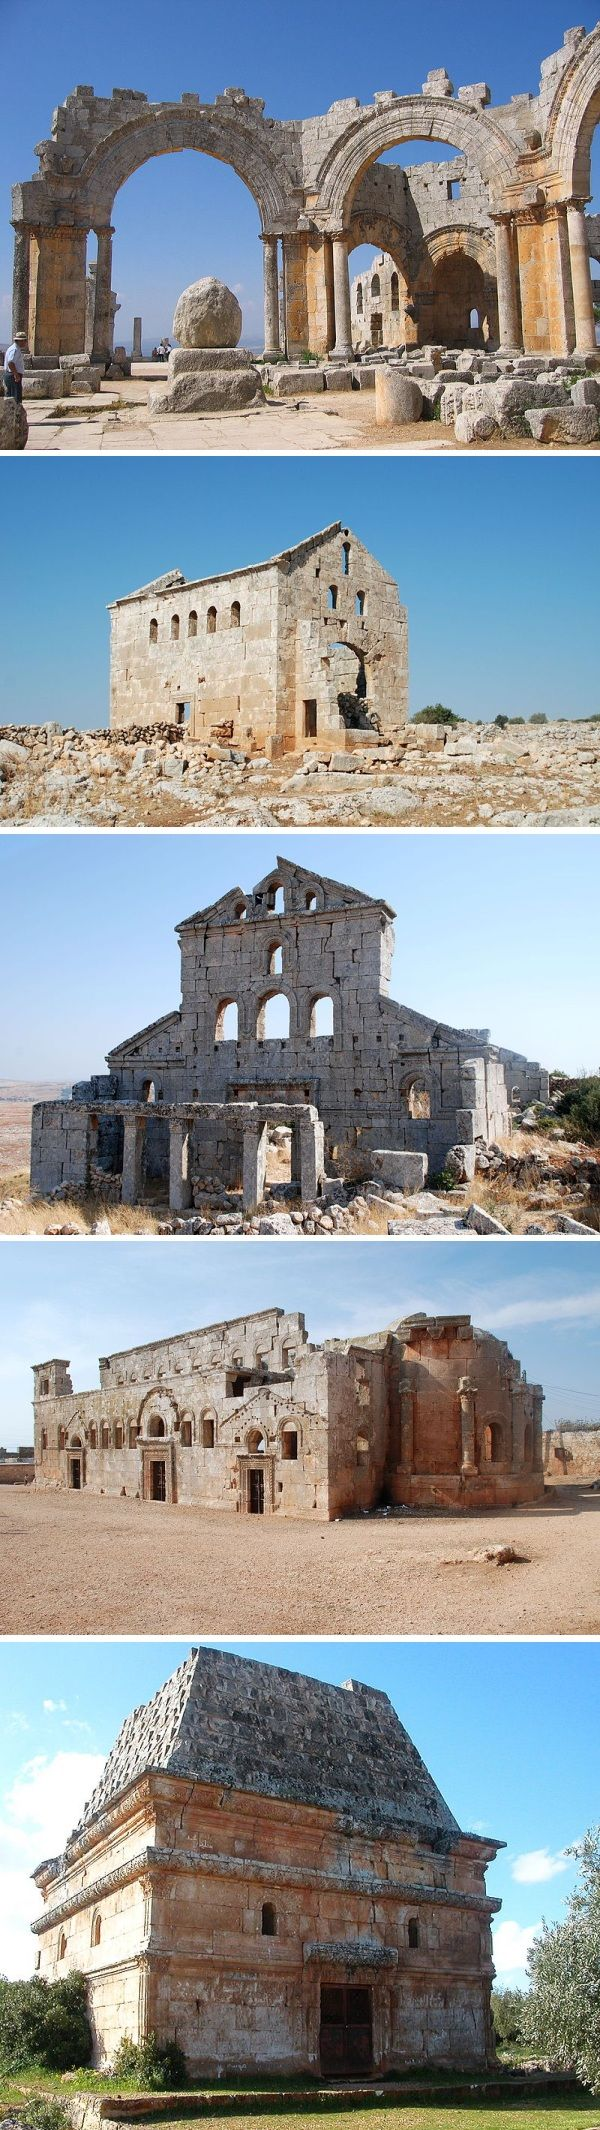 "The Magnificent ""Dead Cities"" of Ancient Syria"